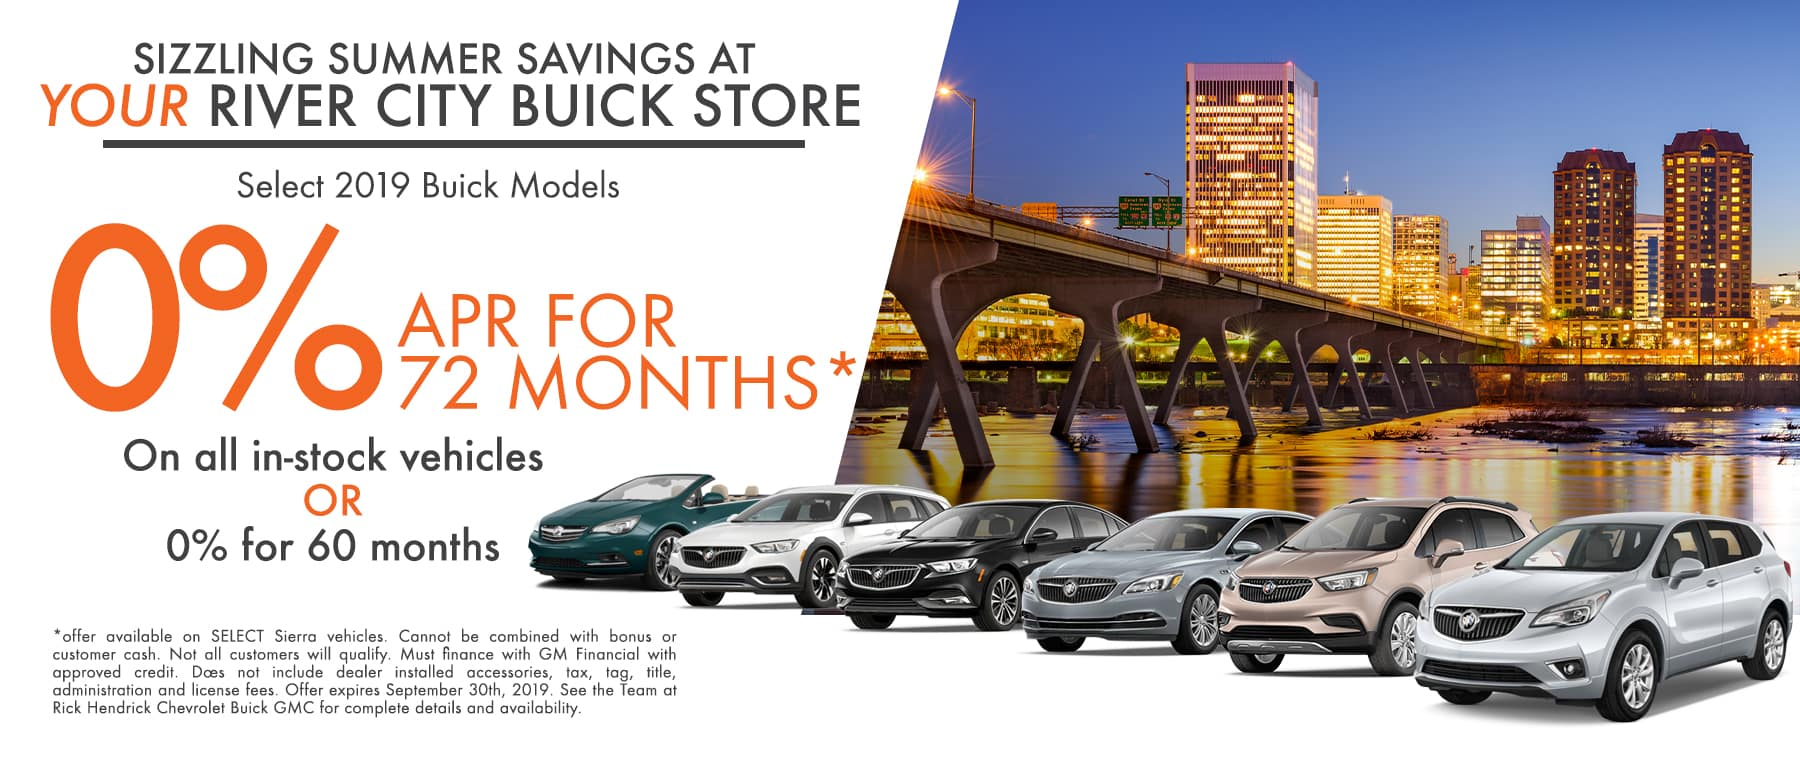 Special Financing for most of the 2019 Buick Models